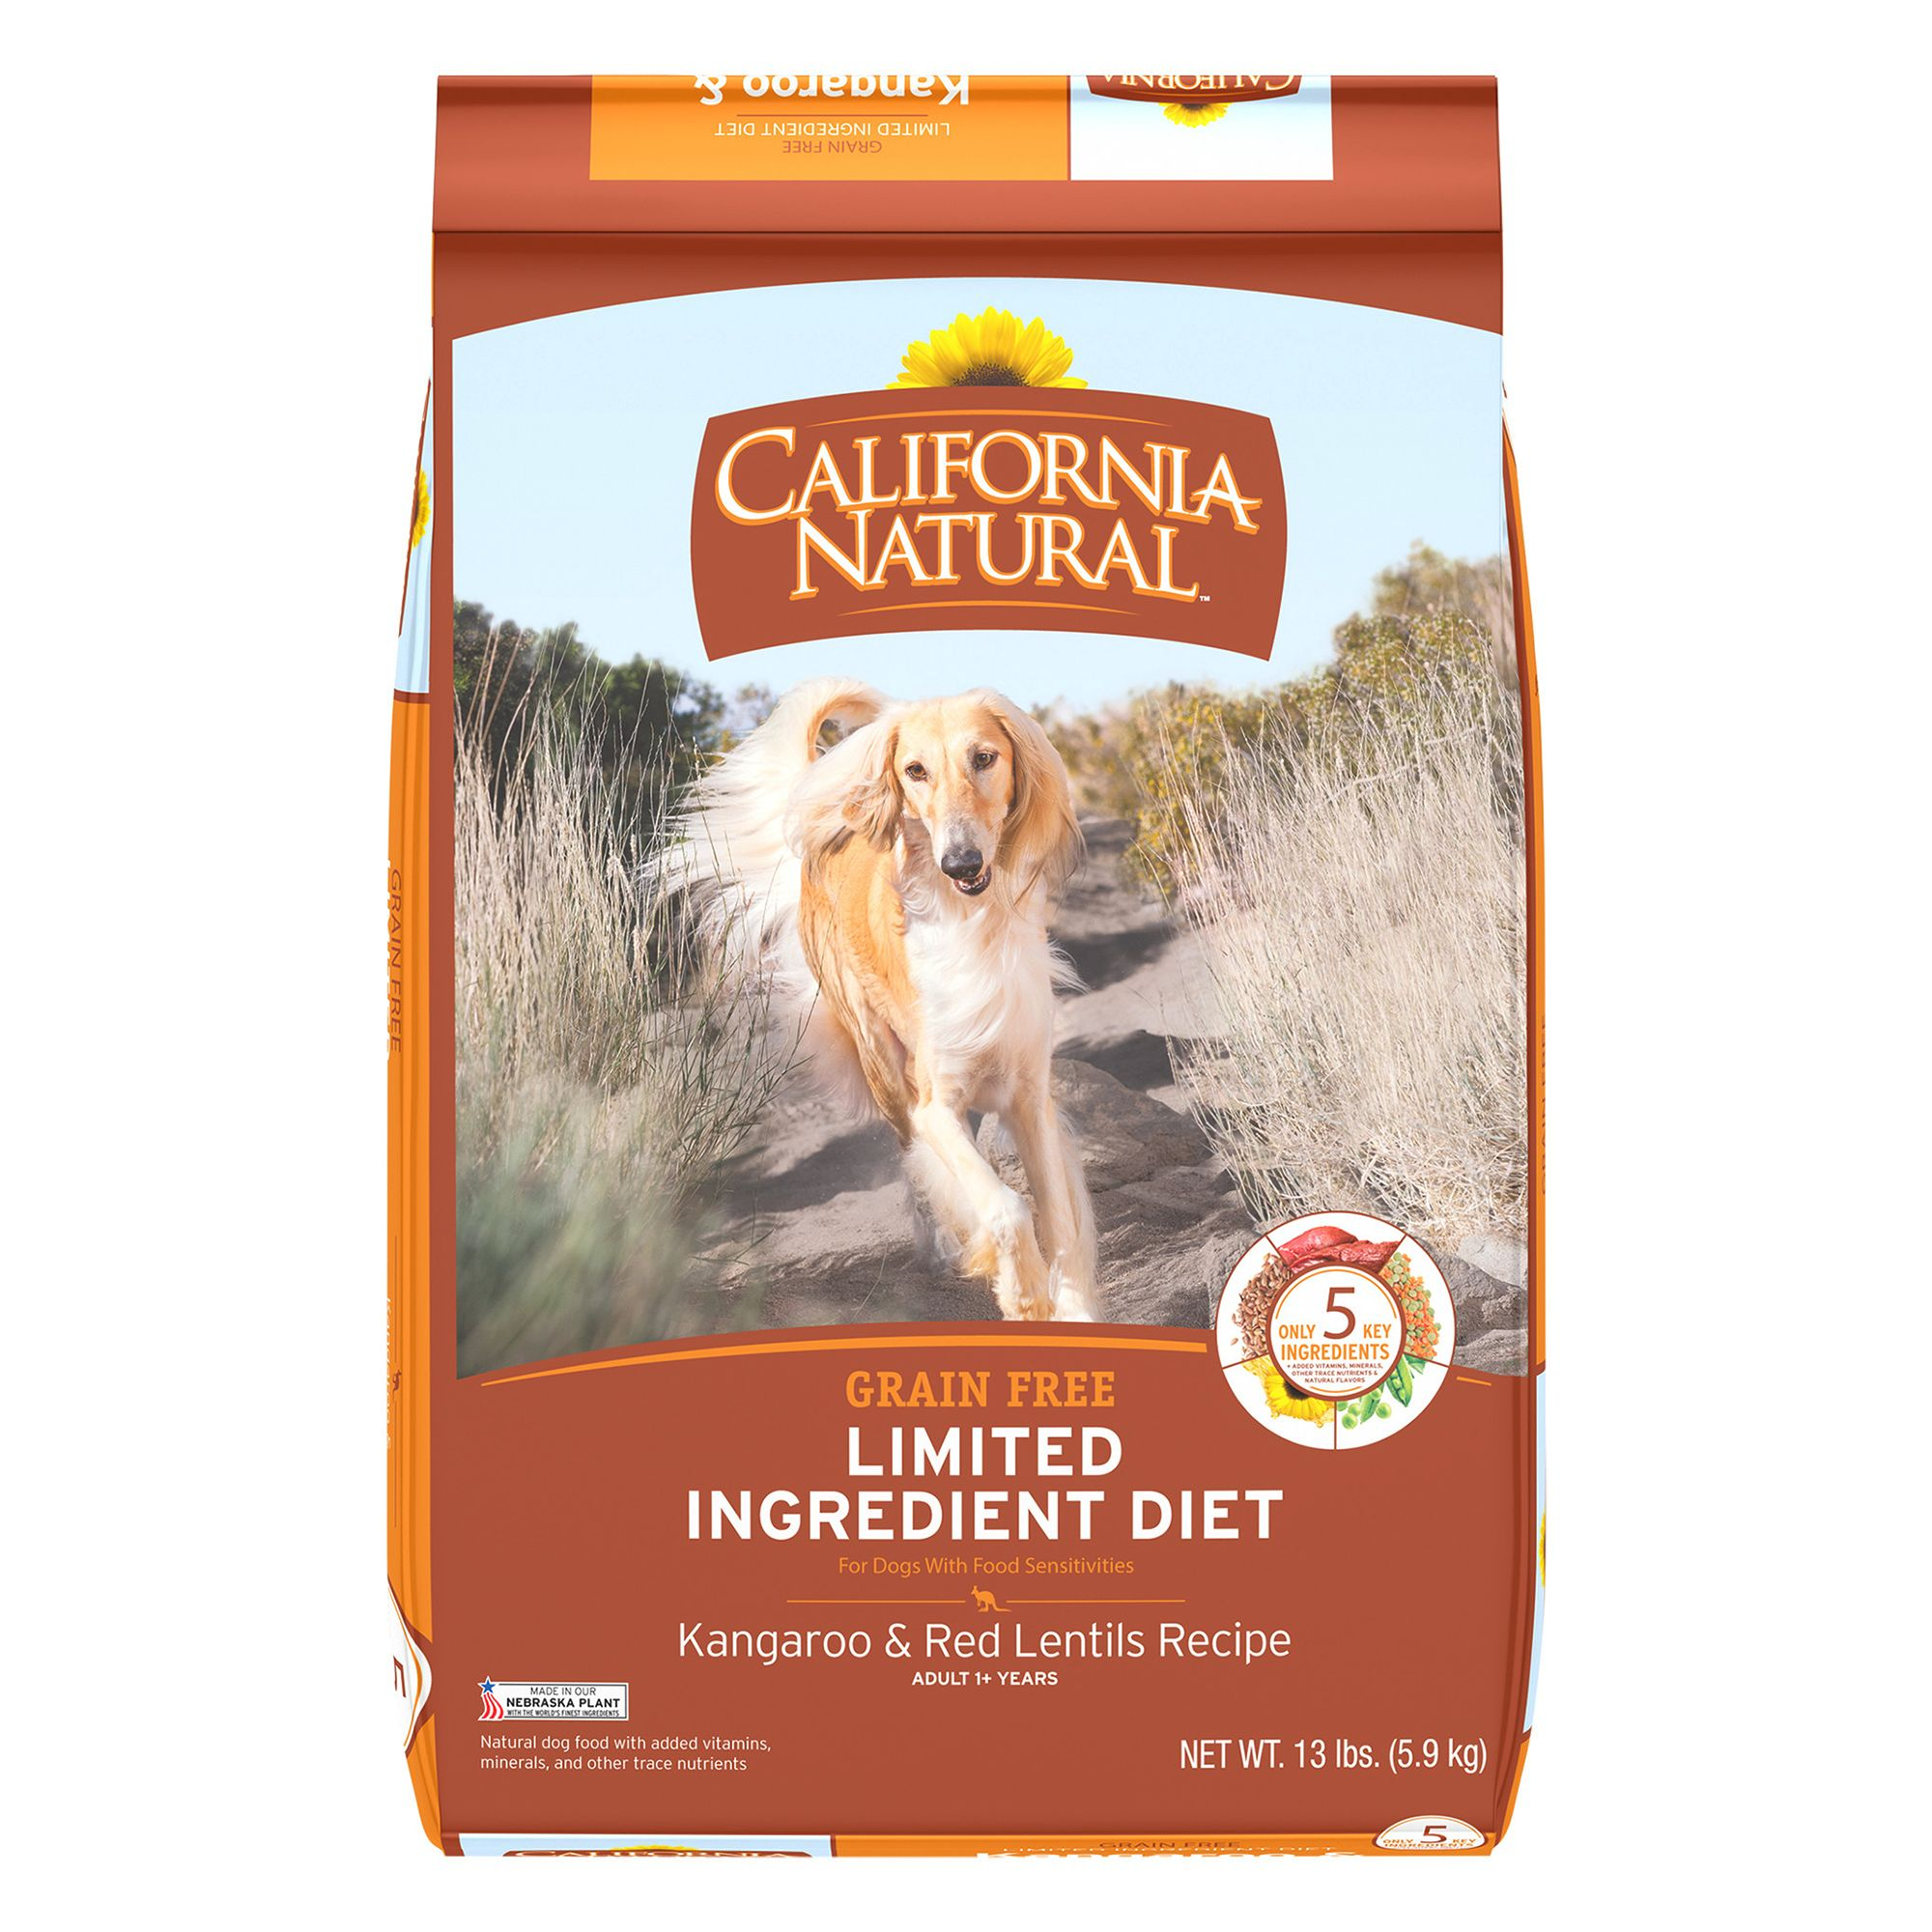 California Natural Limited Ingredient Diet Dog Food Natural Grain Free Kangaroo And Red Lentils Size 13 Lb